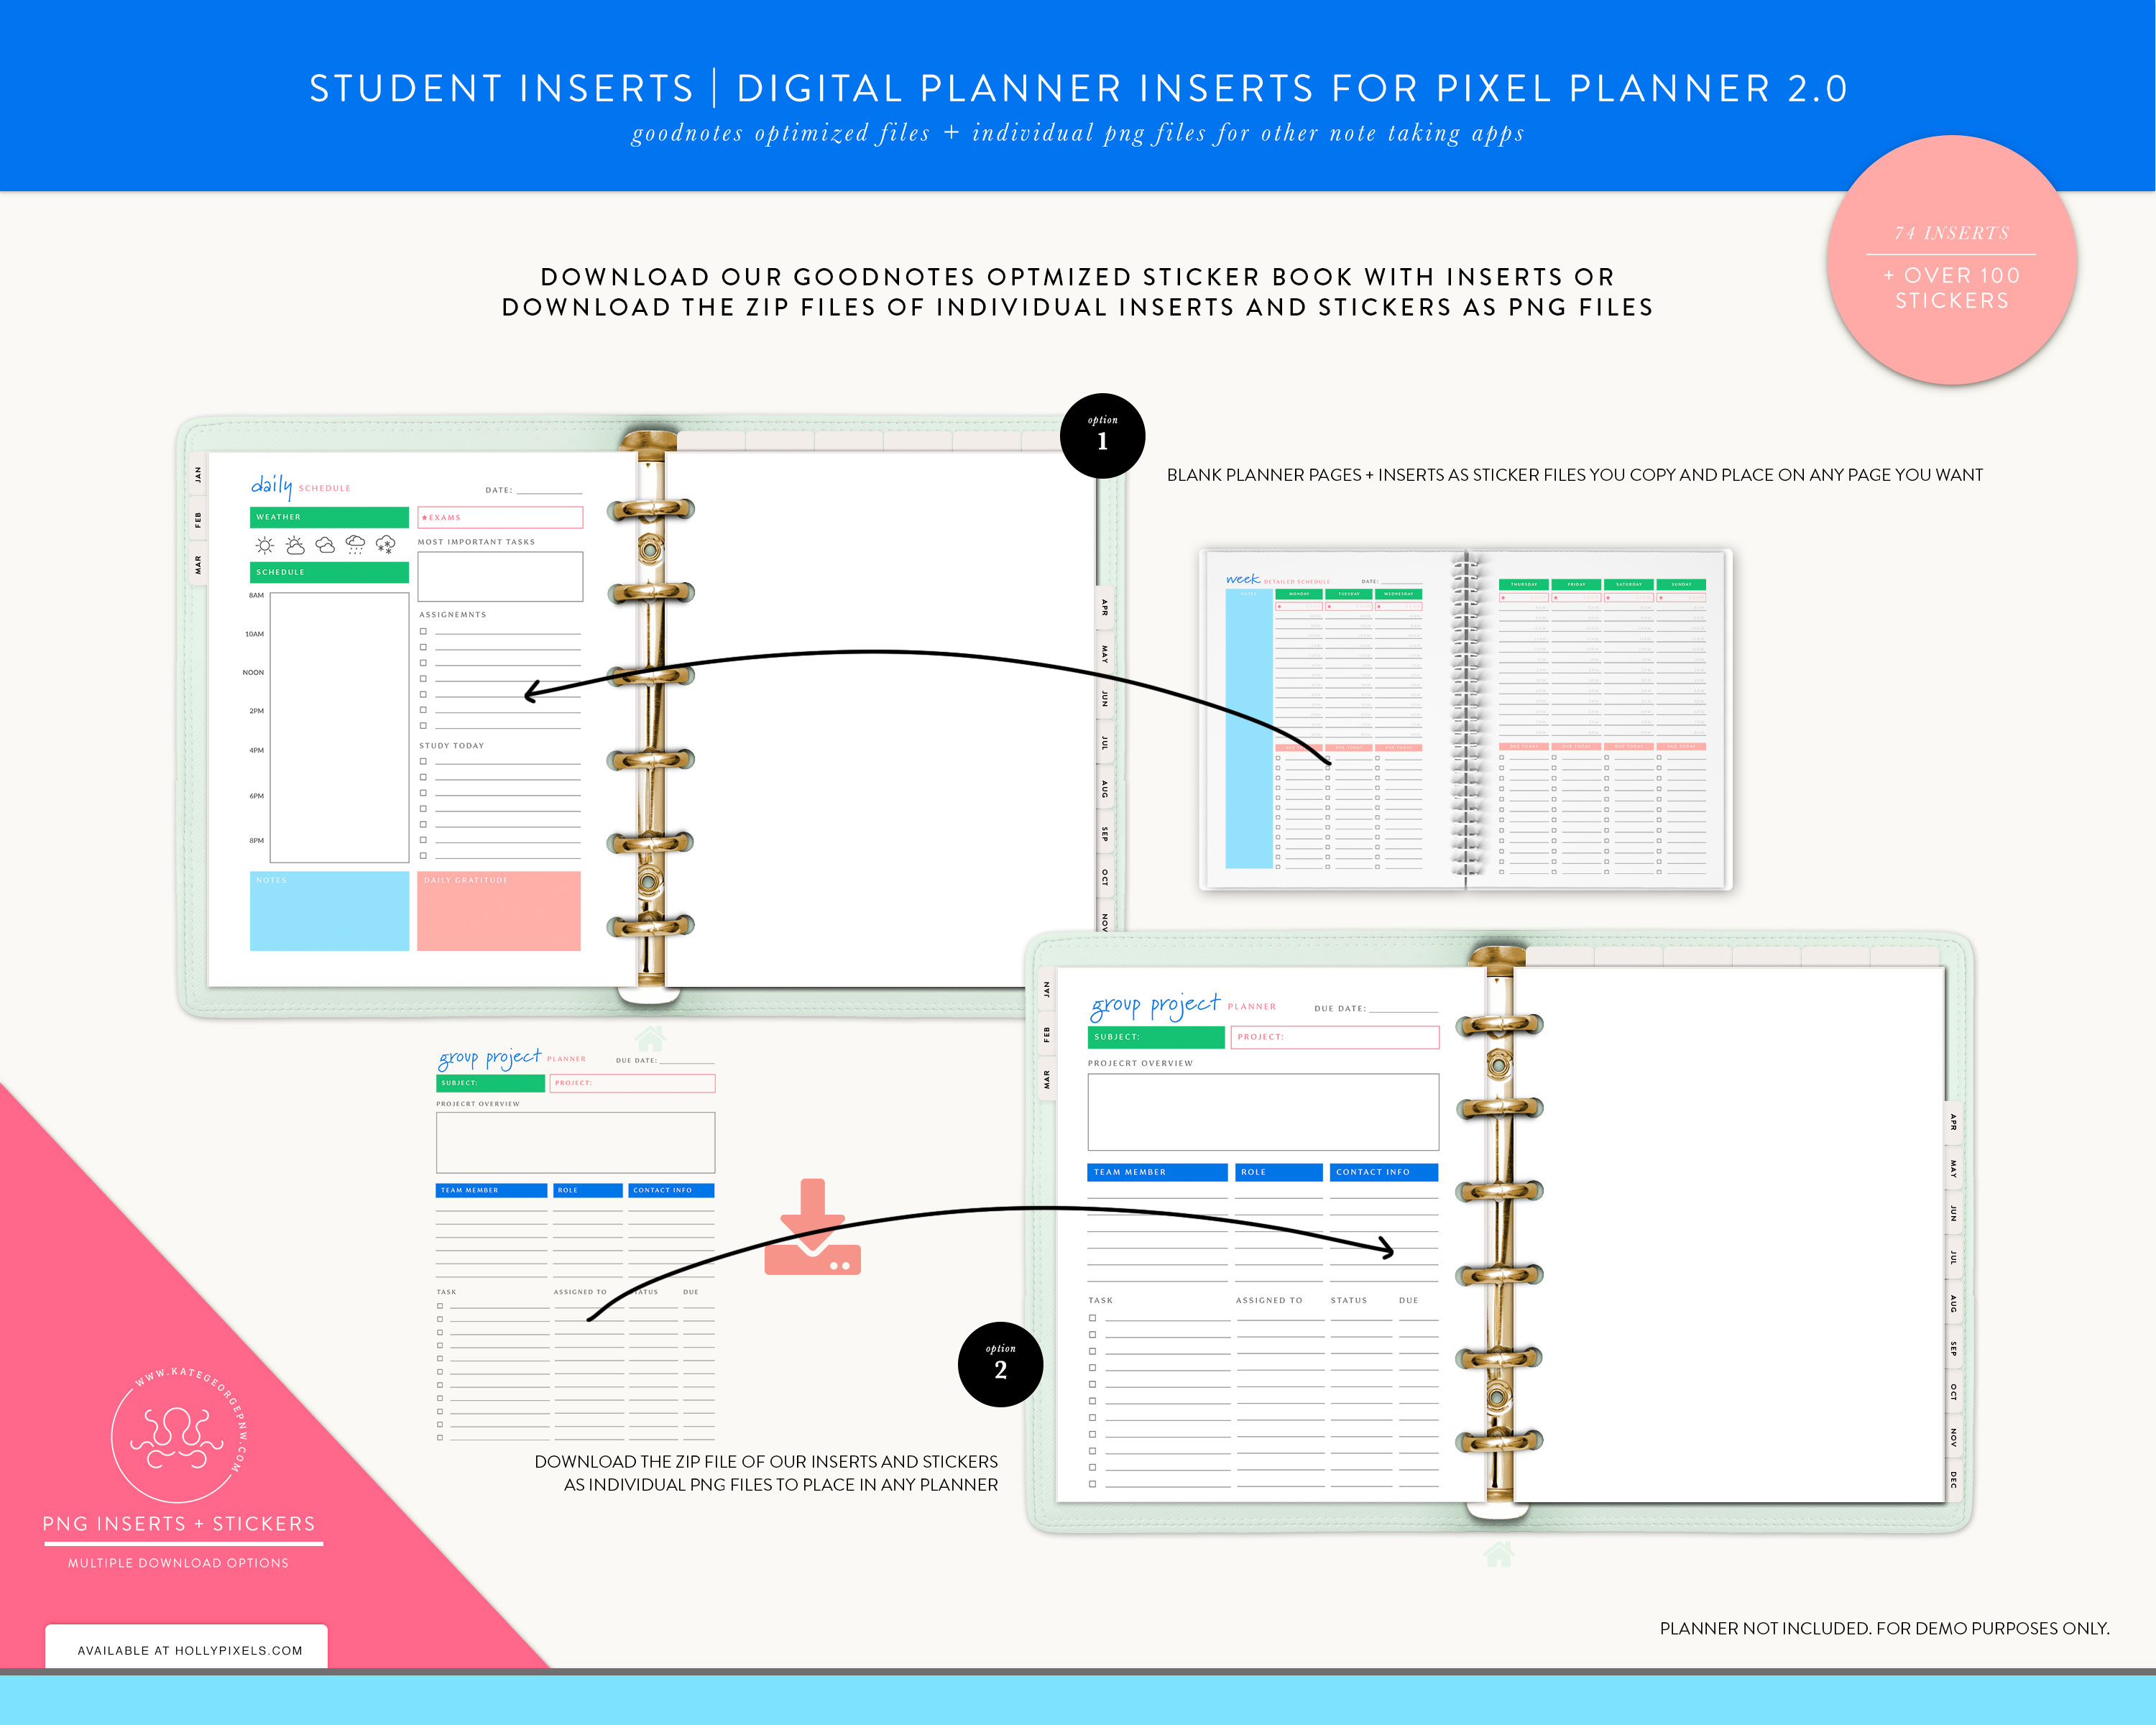 New Student Digital Planner Inserts and Stickers for GoodNotes 3